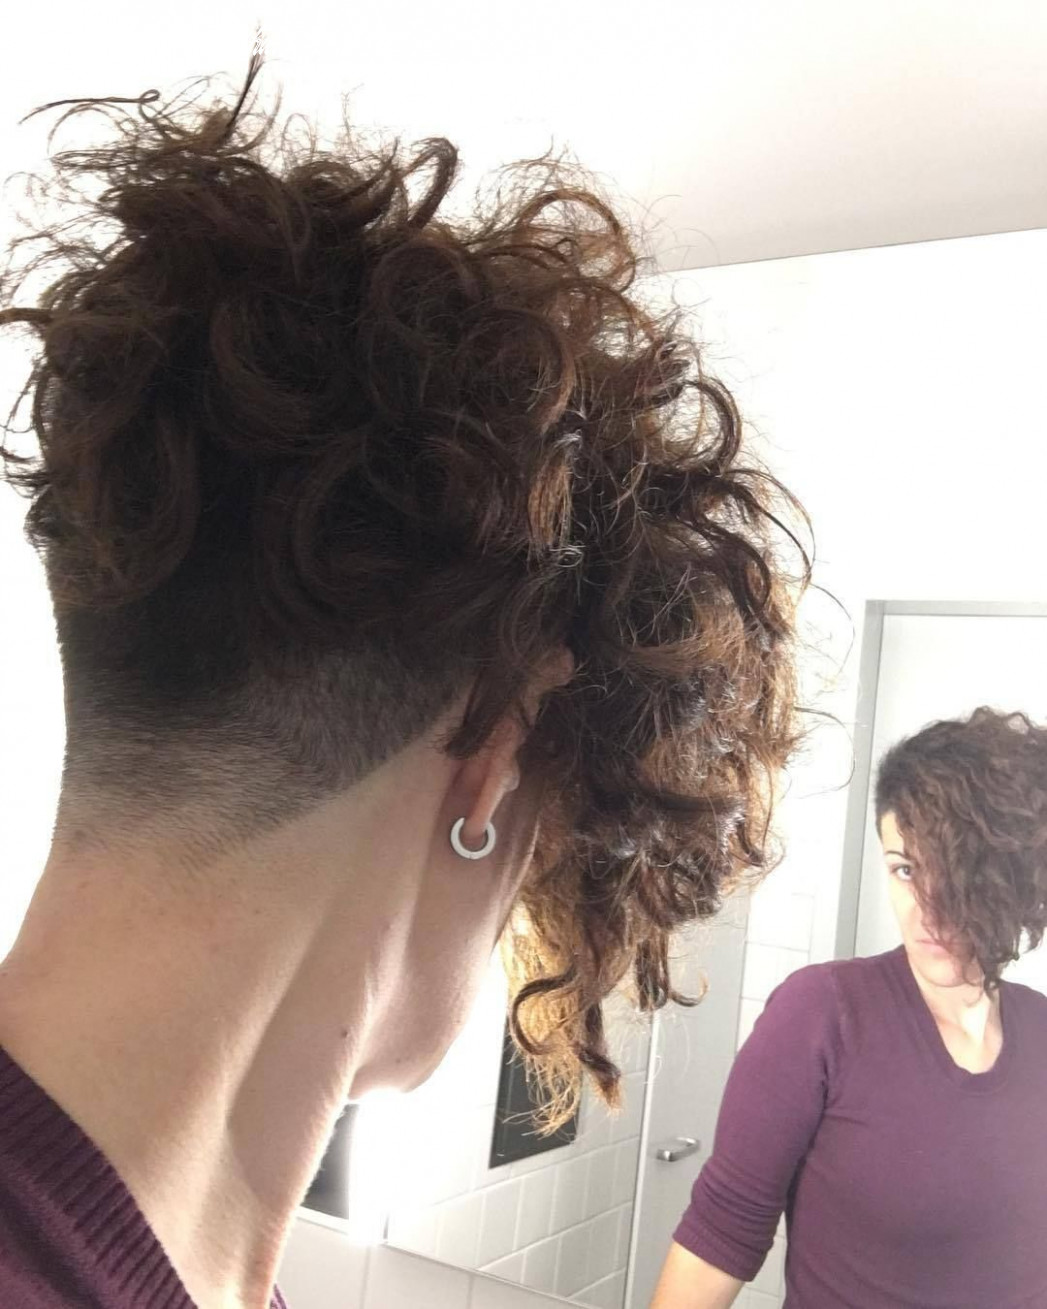 just short haircuts, nothing else. If you're thinking of getting ...